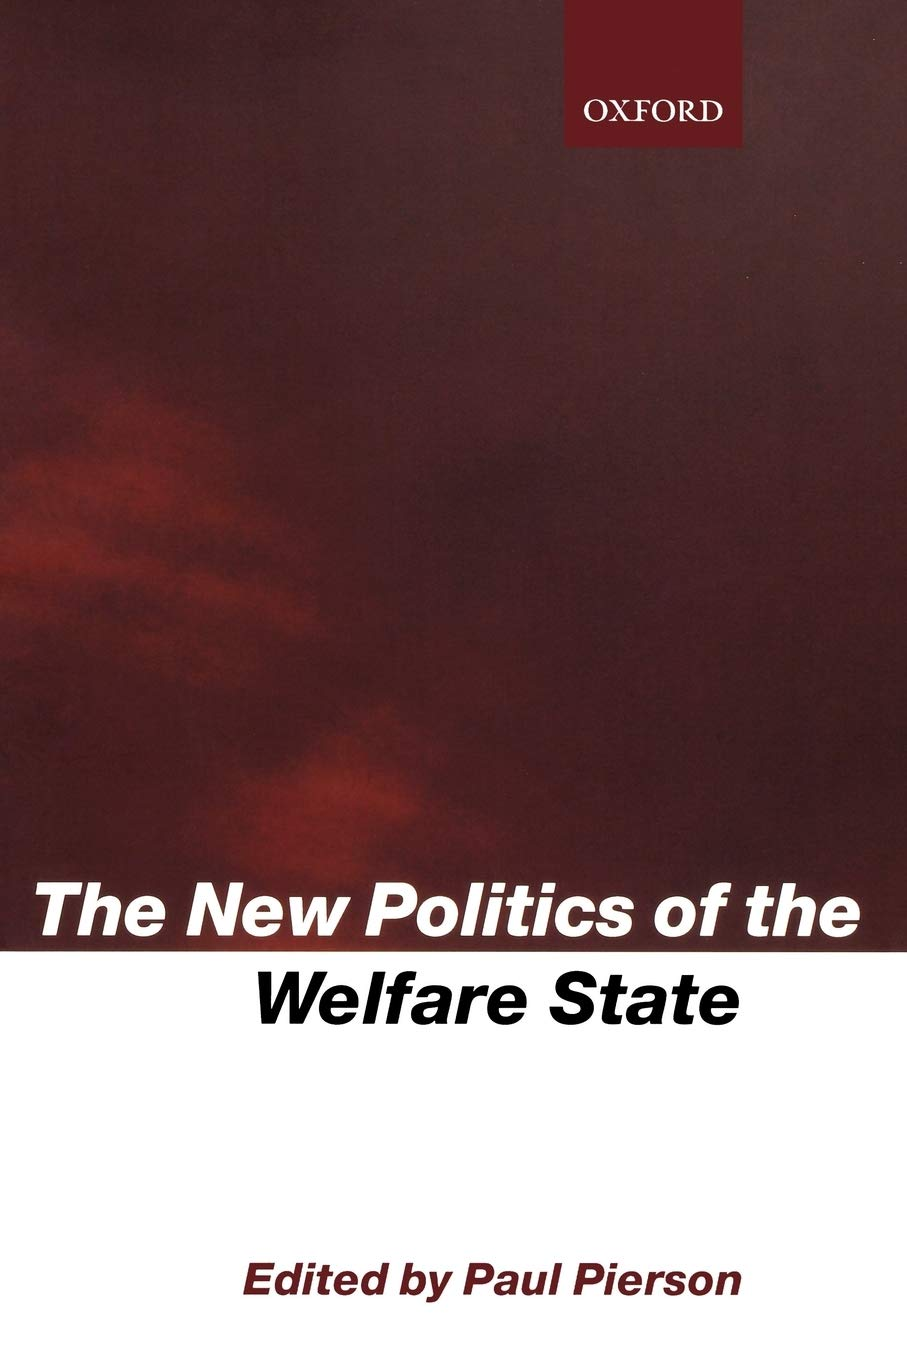 Image OfThe New Politics Of The Welfare State